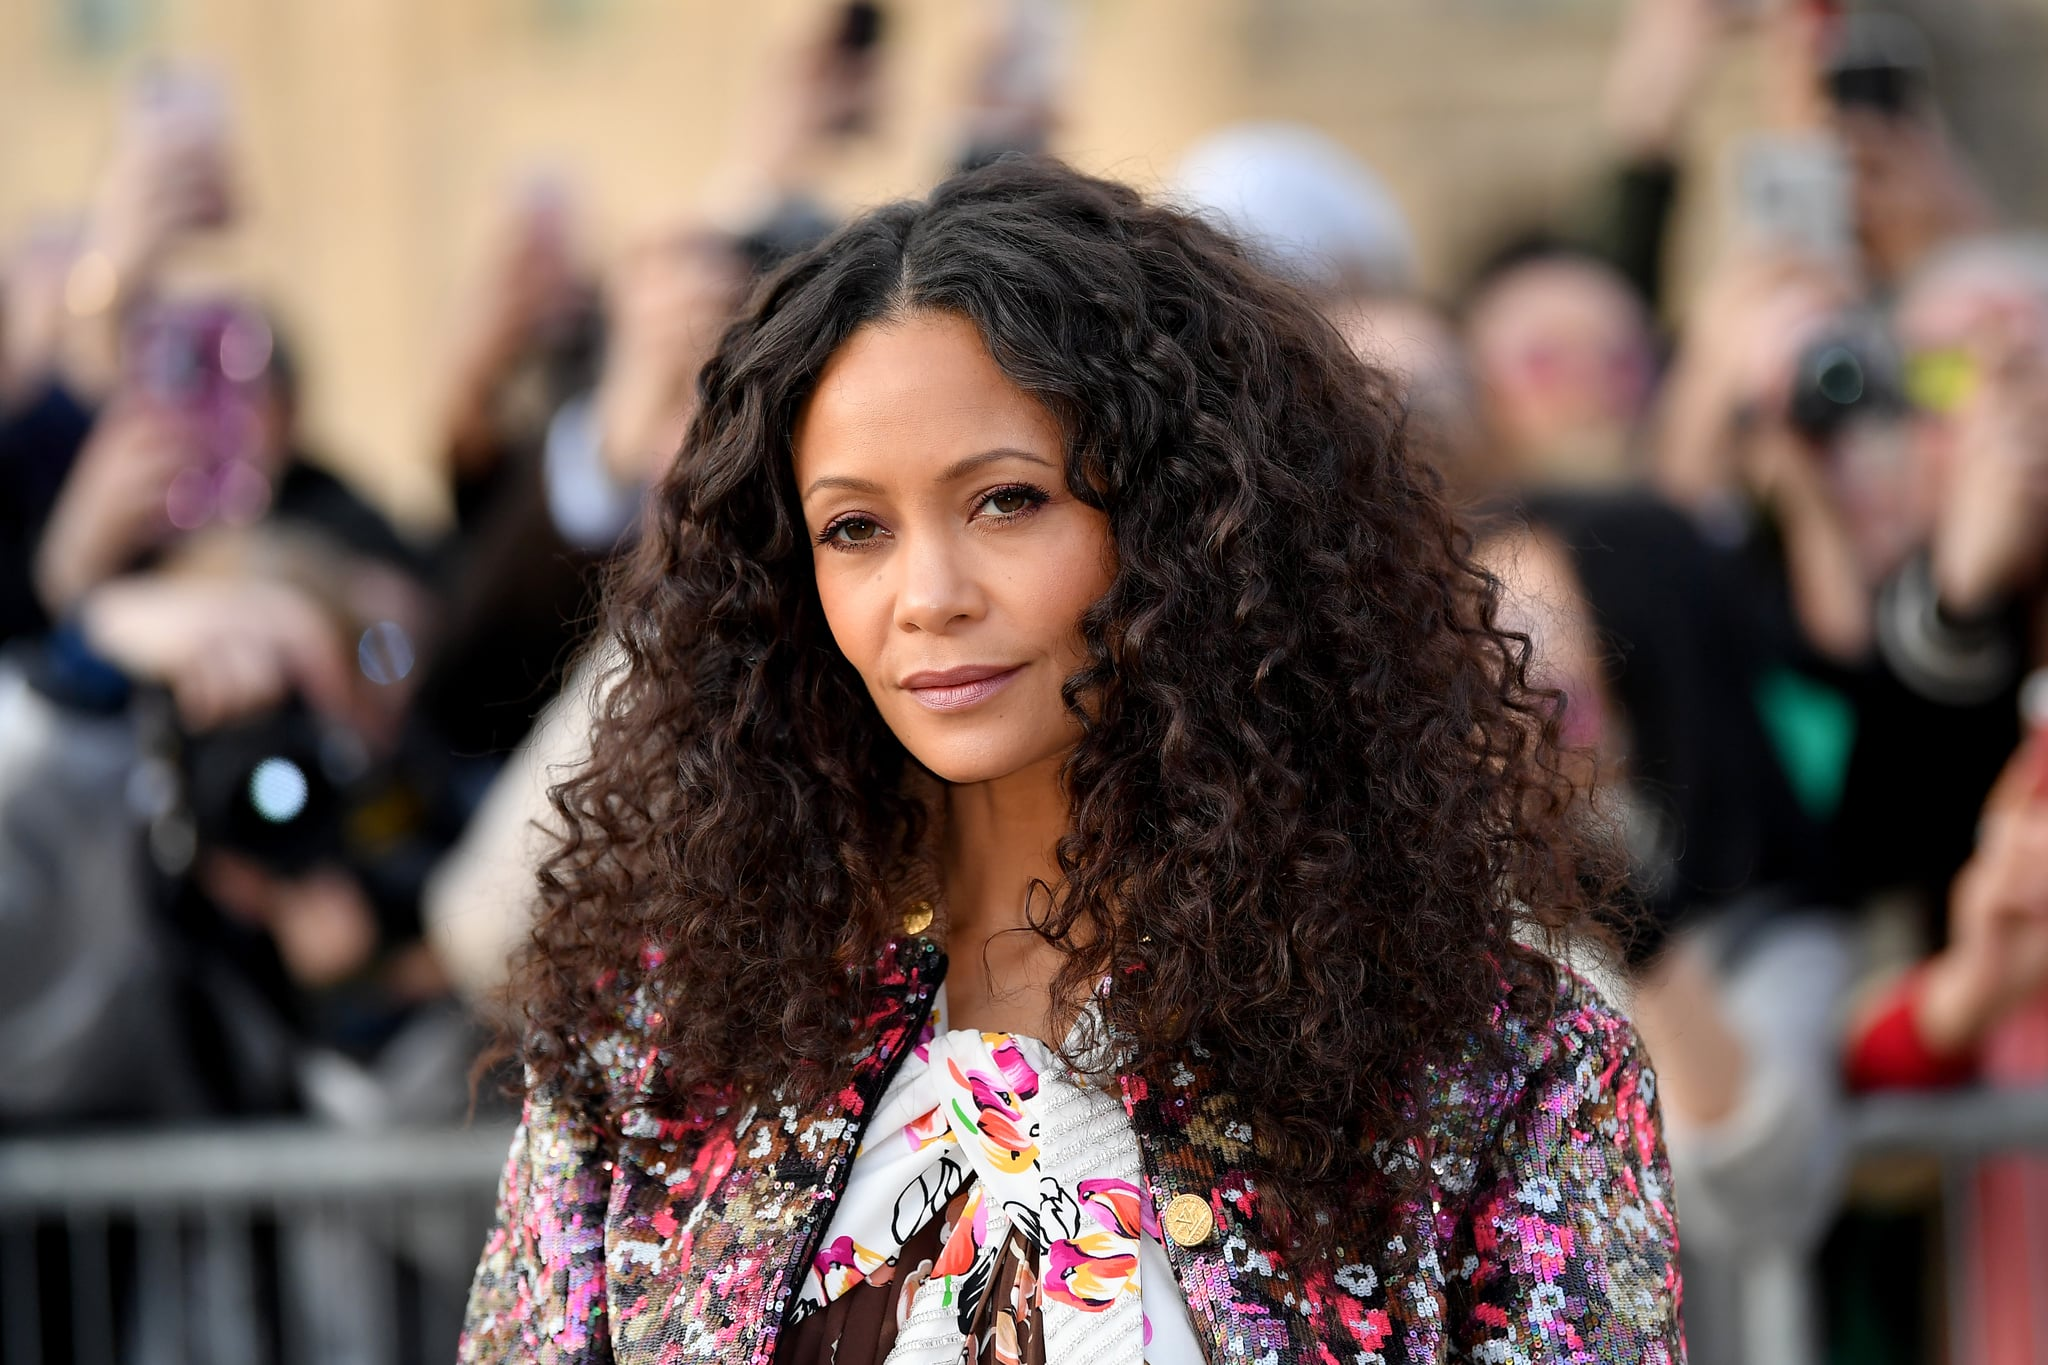 PARIS, FRANCE - MARCH 05: Thandie Newton attends the Louis Vuitton show as part of the Paris Fashion Week Womenswear Fall/Winter 2019/2020  on March 05, 2019 in Paris, France. (Photo by Jacopo Raule/Getty Images)